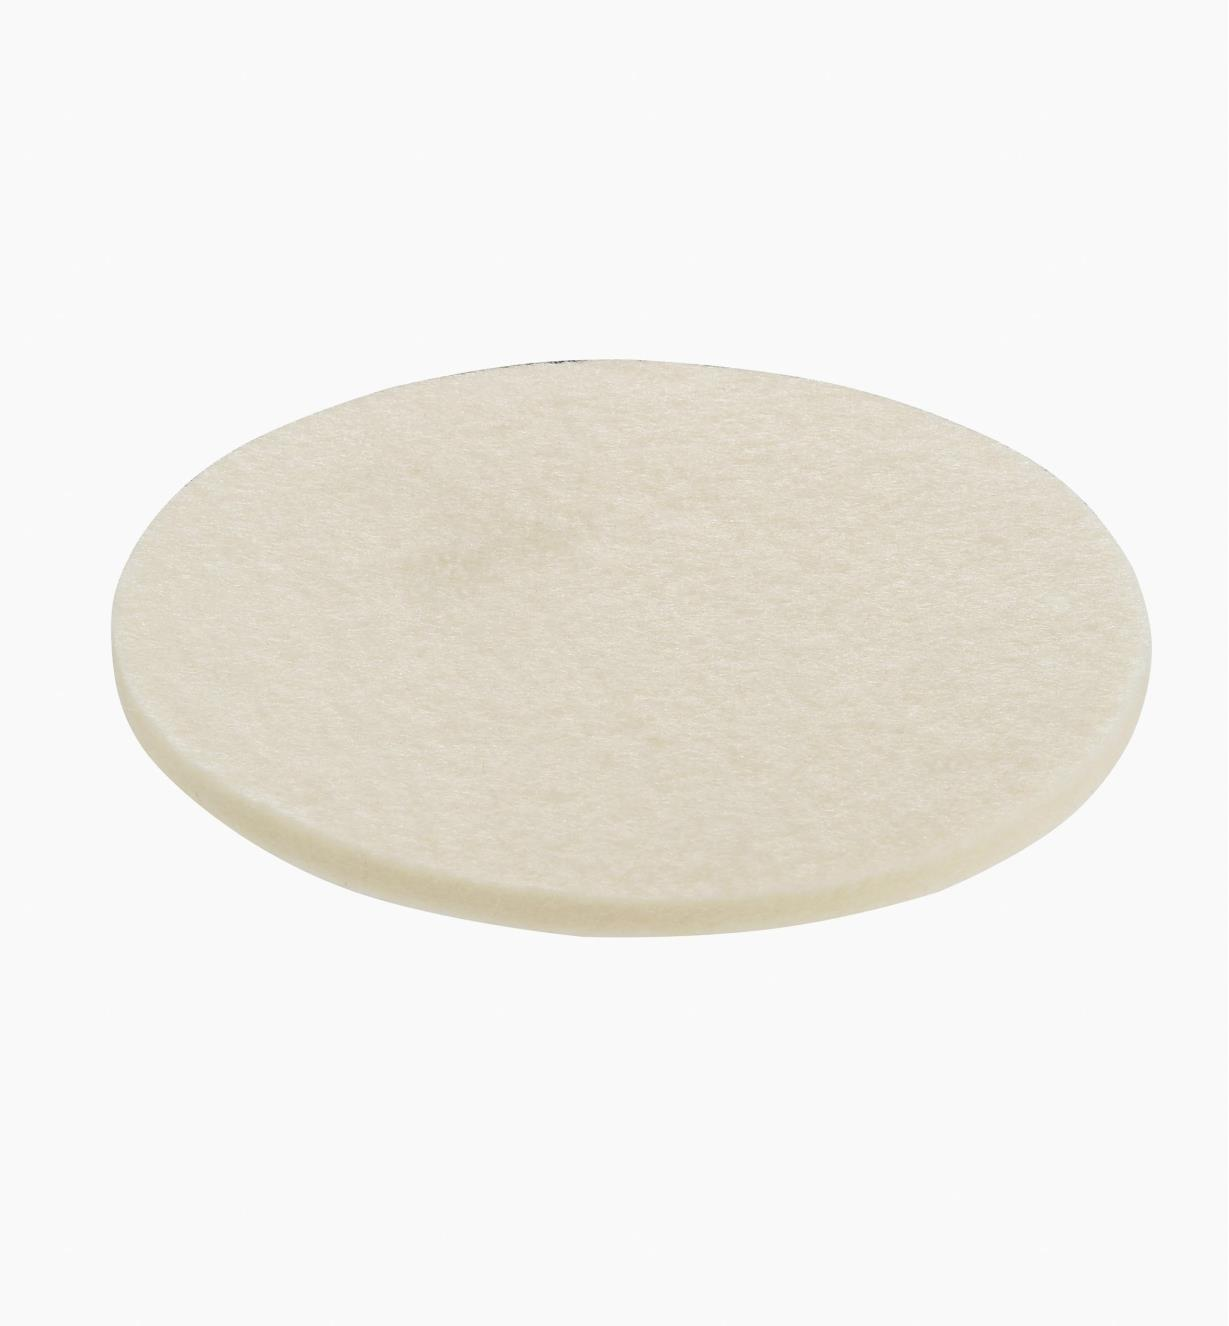 ZA493078 - Hard Polishing Felt